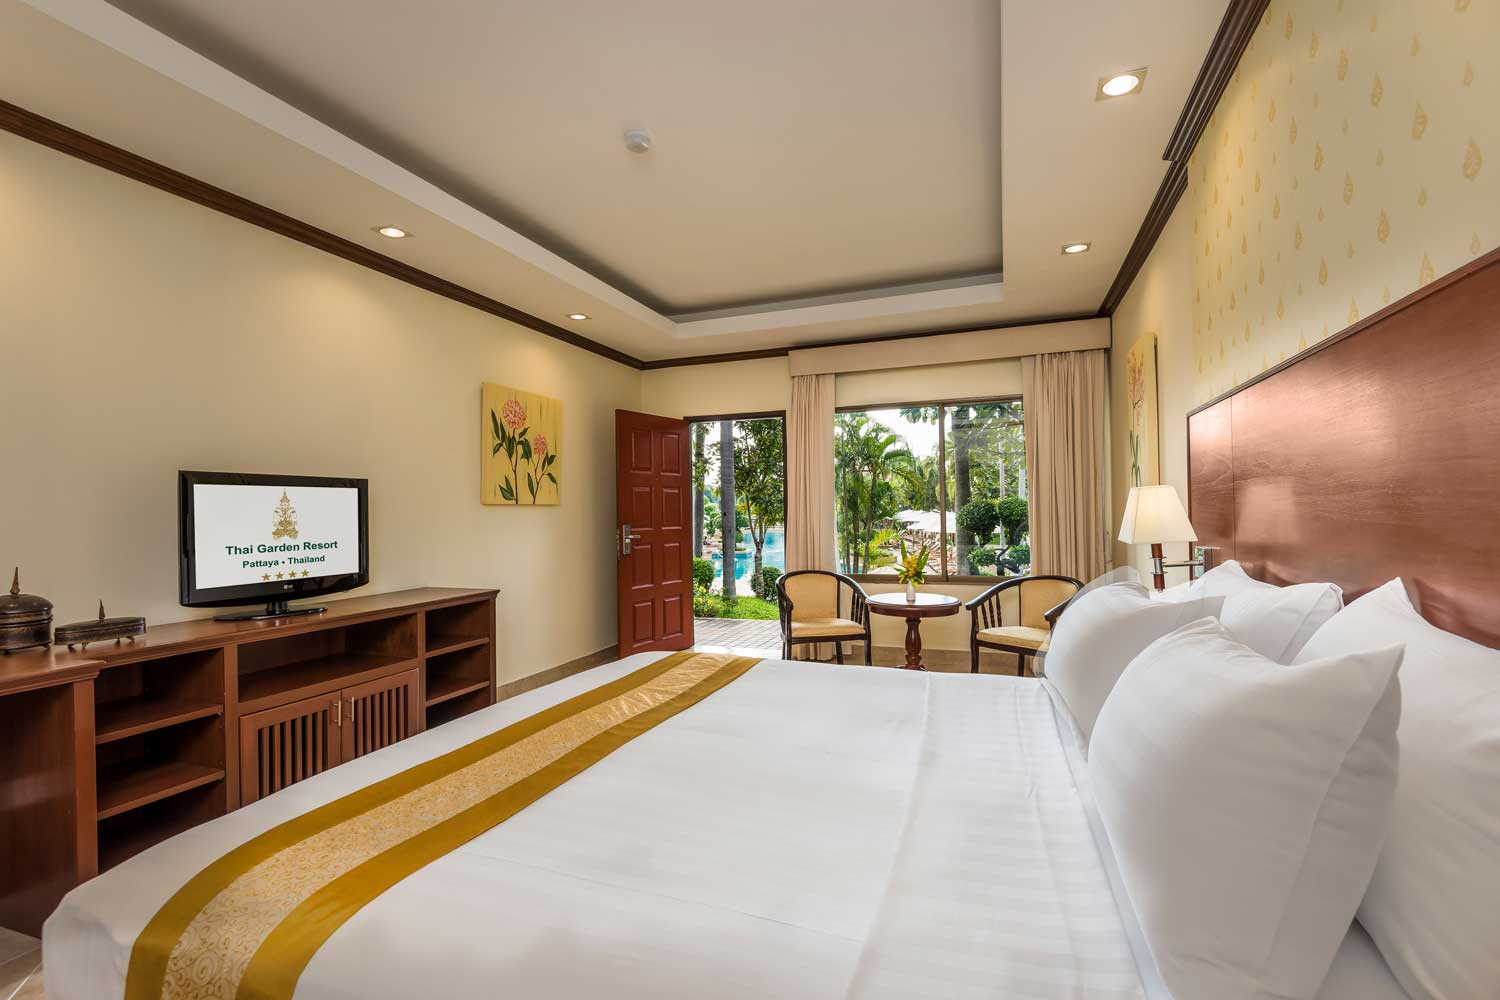 Deluxe hotel room with a pool view of the Thai Garden Resort in Pattaya, Thailand.